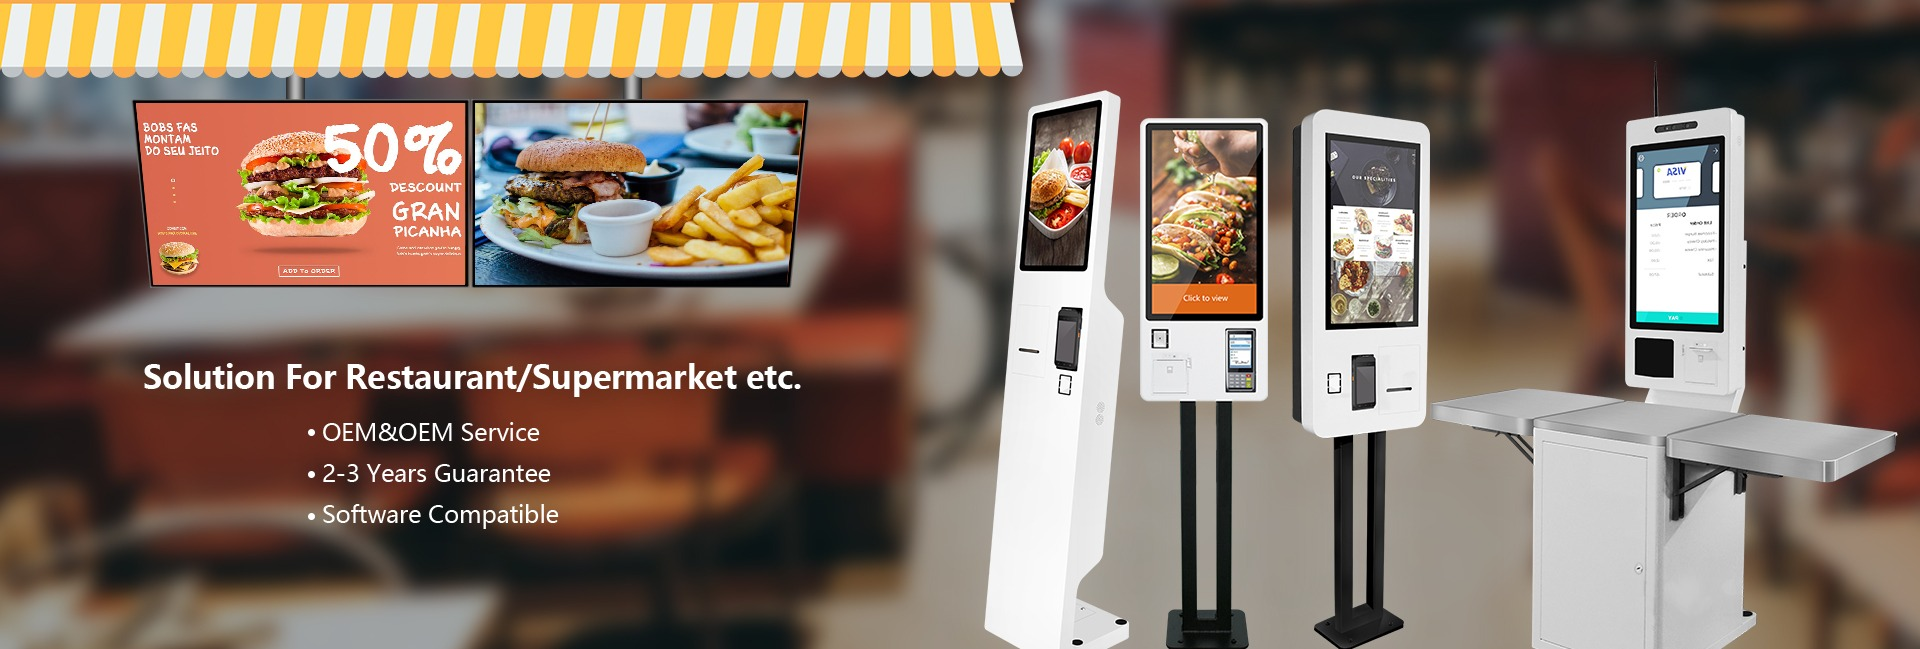 pizza restaurant pos systems Digital Screens and self order kiosk